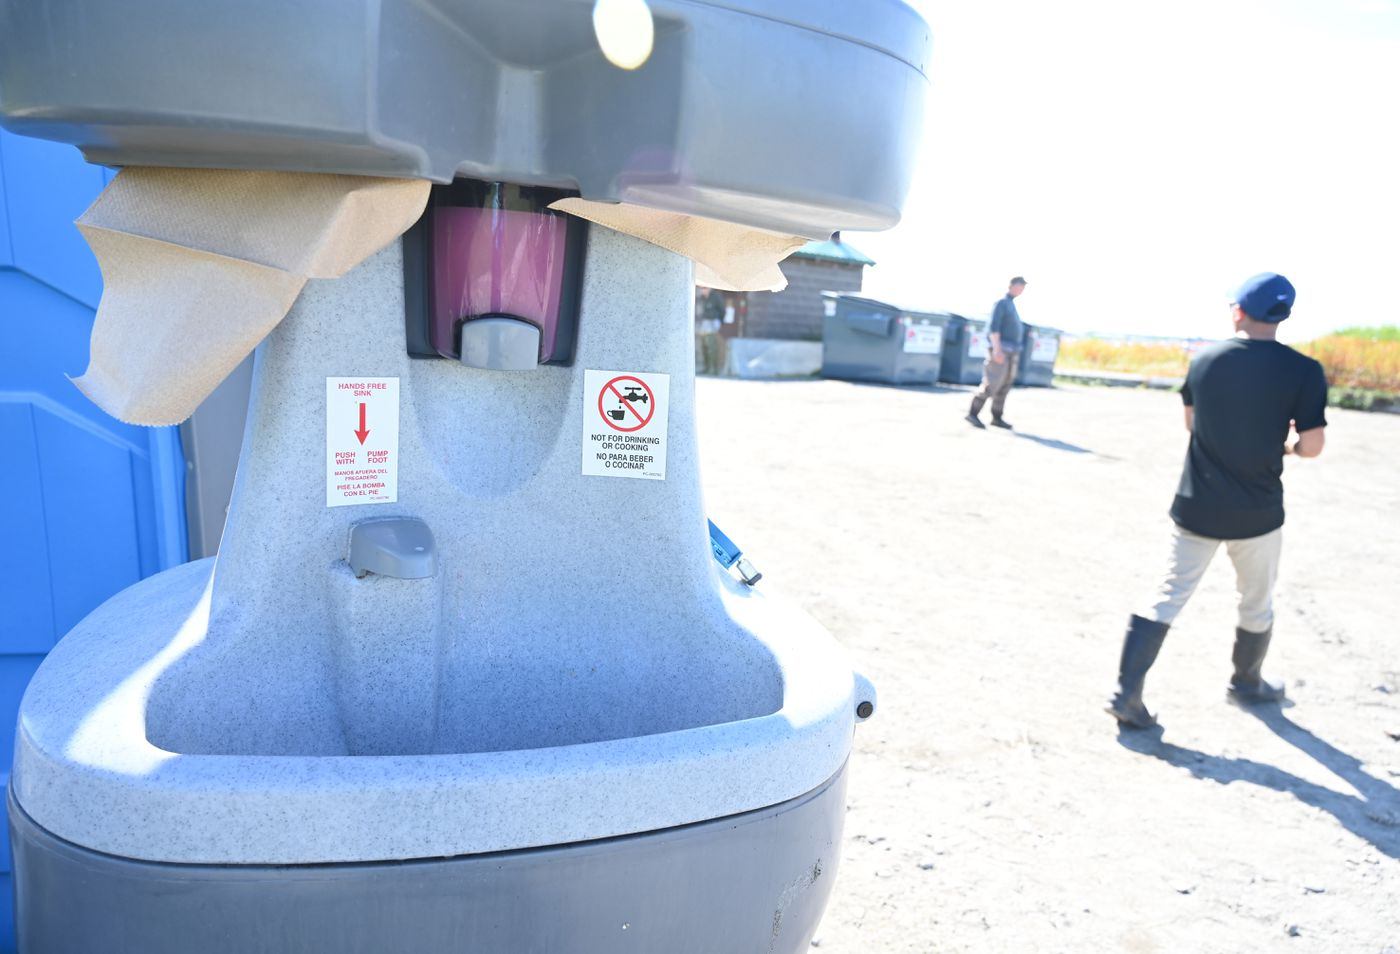 For the first time ever, the facilities in the Kenai River parking lot include hand-washing stations. (Anne Raup / ADN)